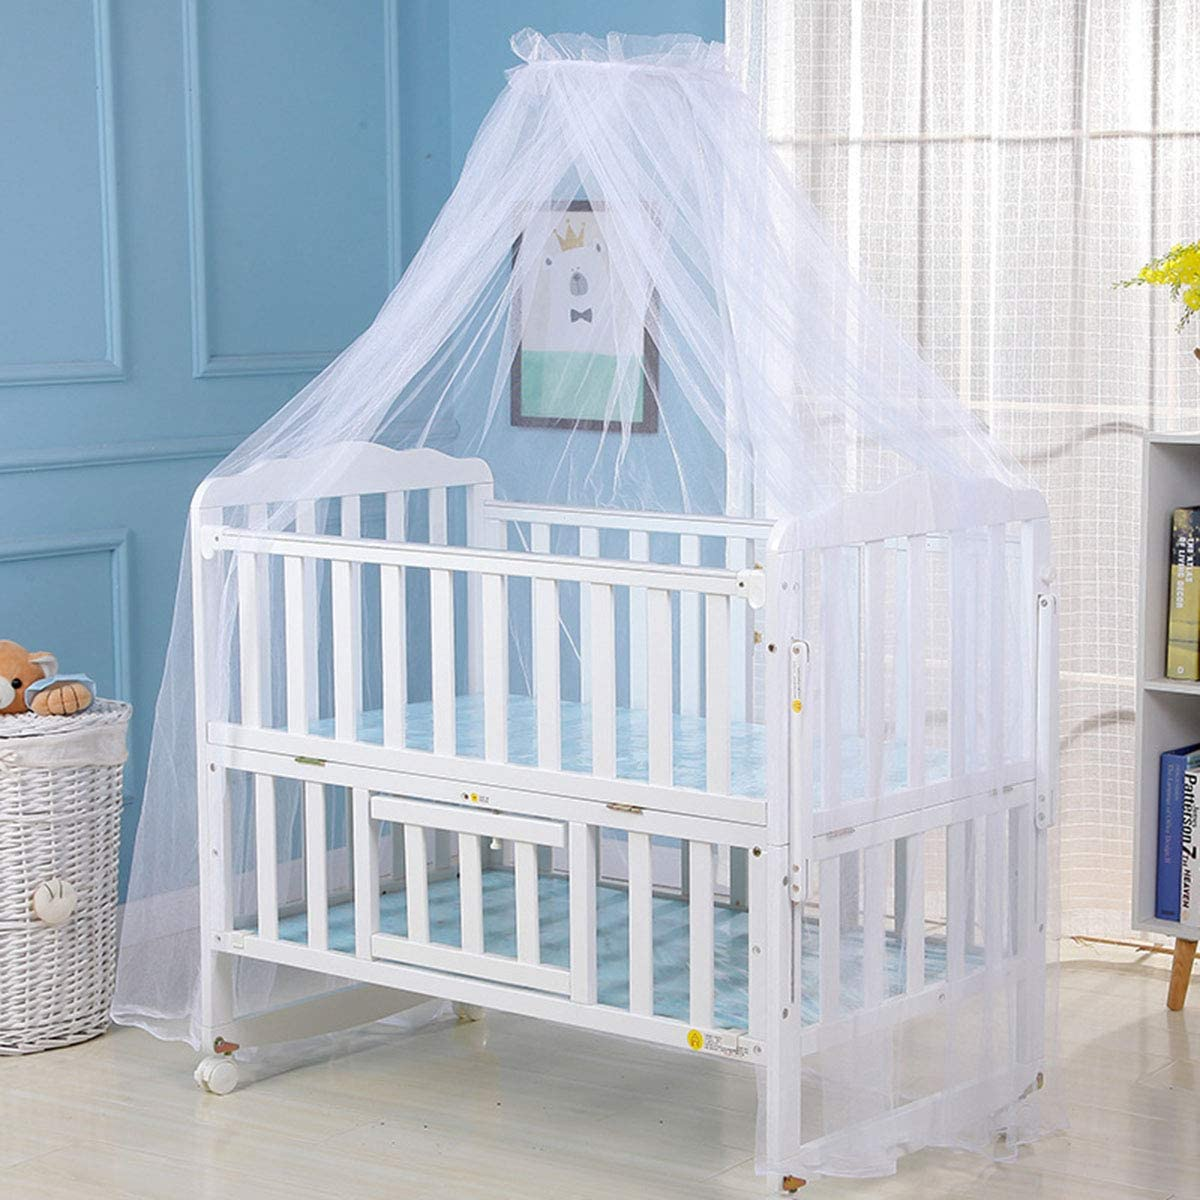 Eurobuy Baby Crib Safety Net Baby Bed Canopy Netting Cover Crib Net Baby Child Mosquito Net Newborn Foldable Mosquito Mesh Net Protect Your Baby from Bites